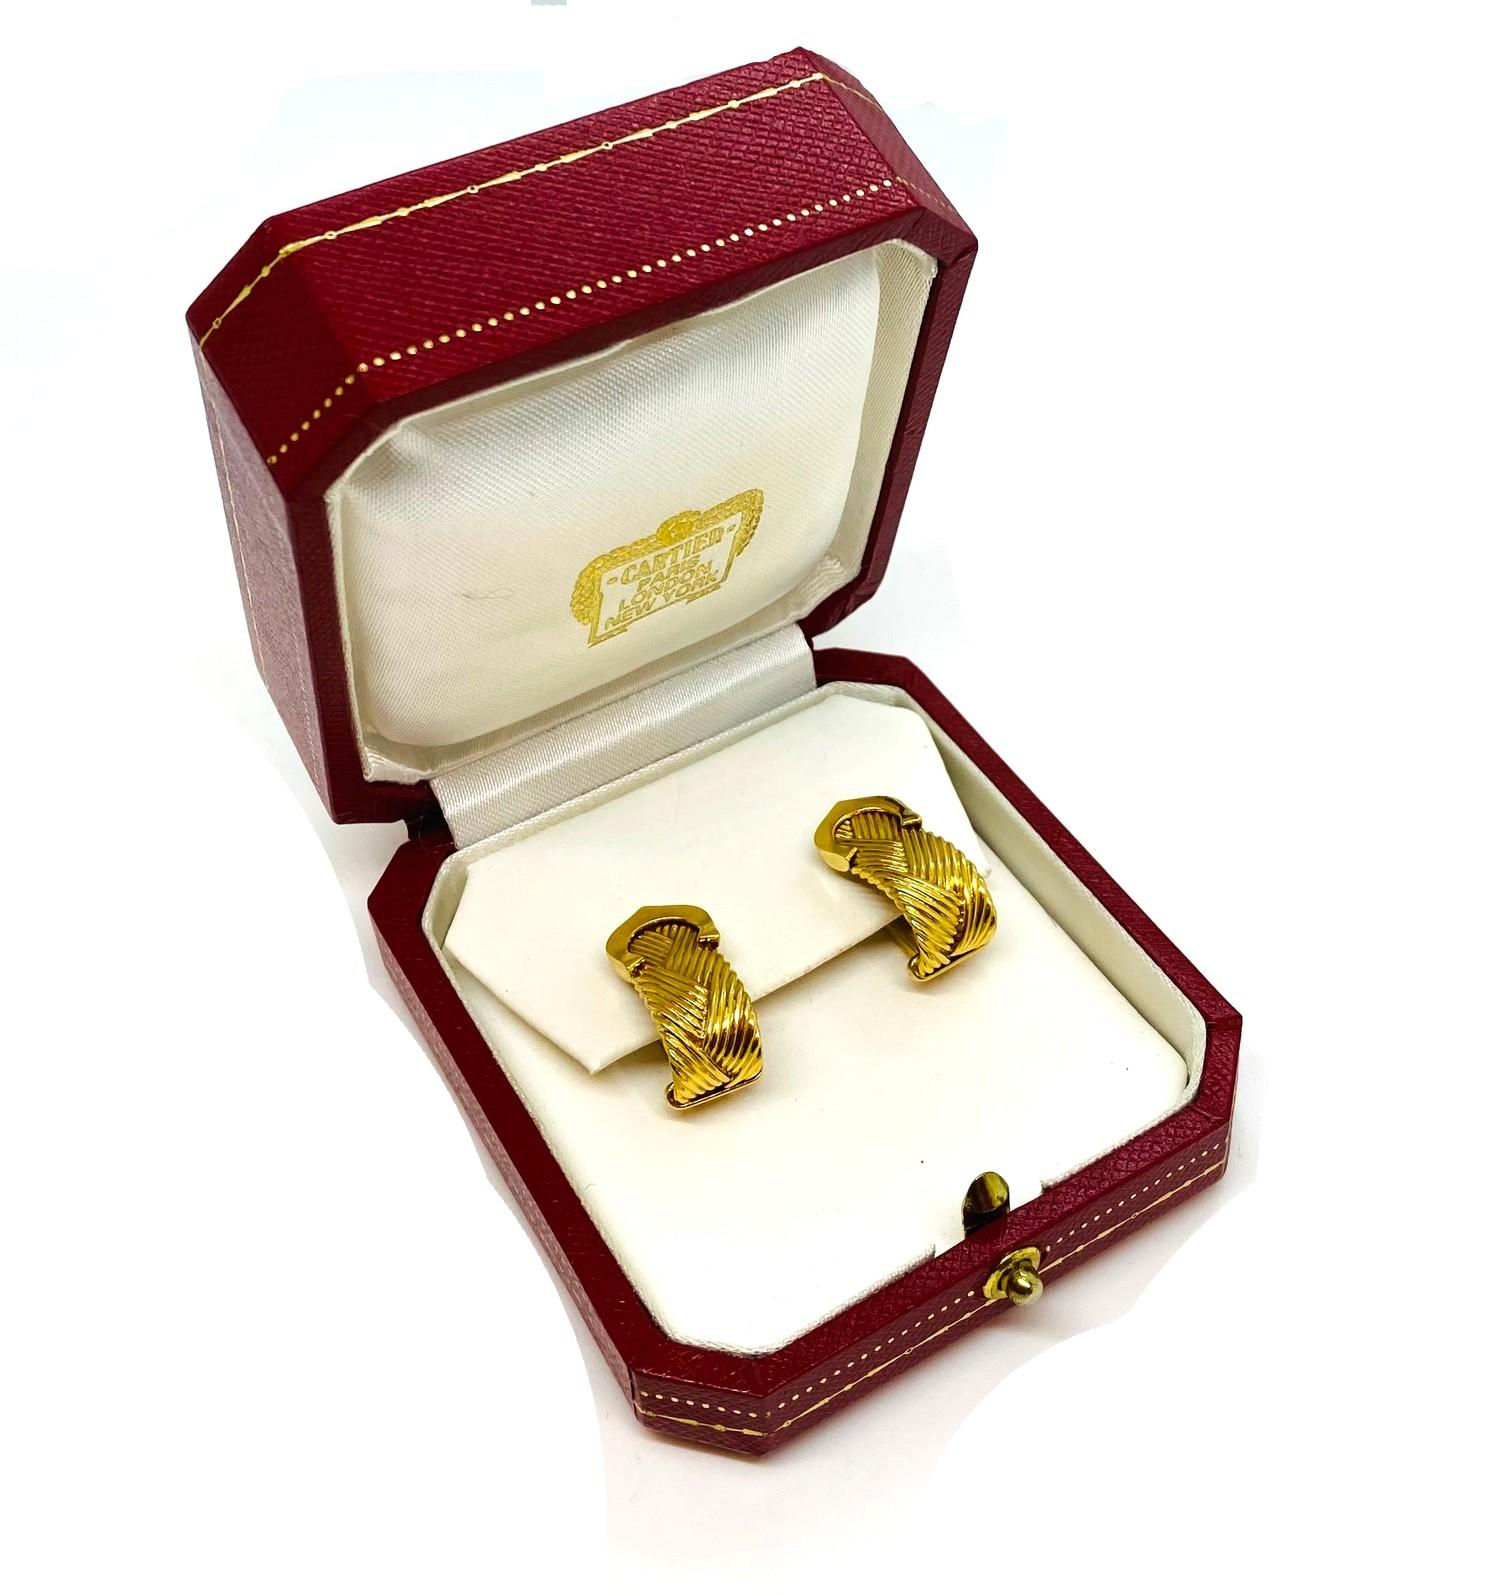 A pair of Vintage Cartier crossed C's textured yellow gold ear clips, mounted in 18ct yellow gold.